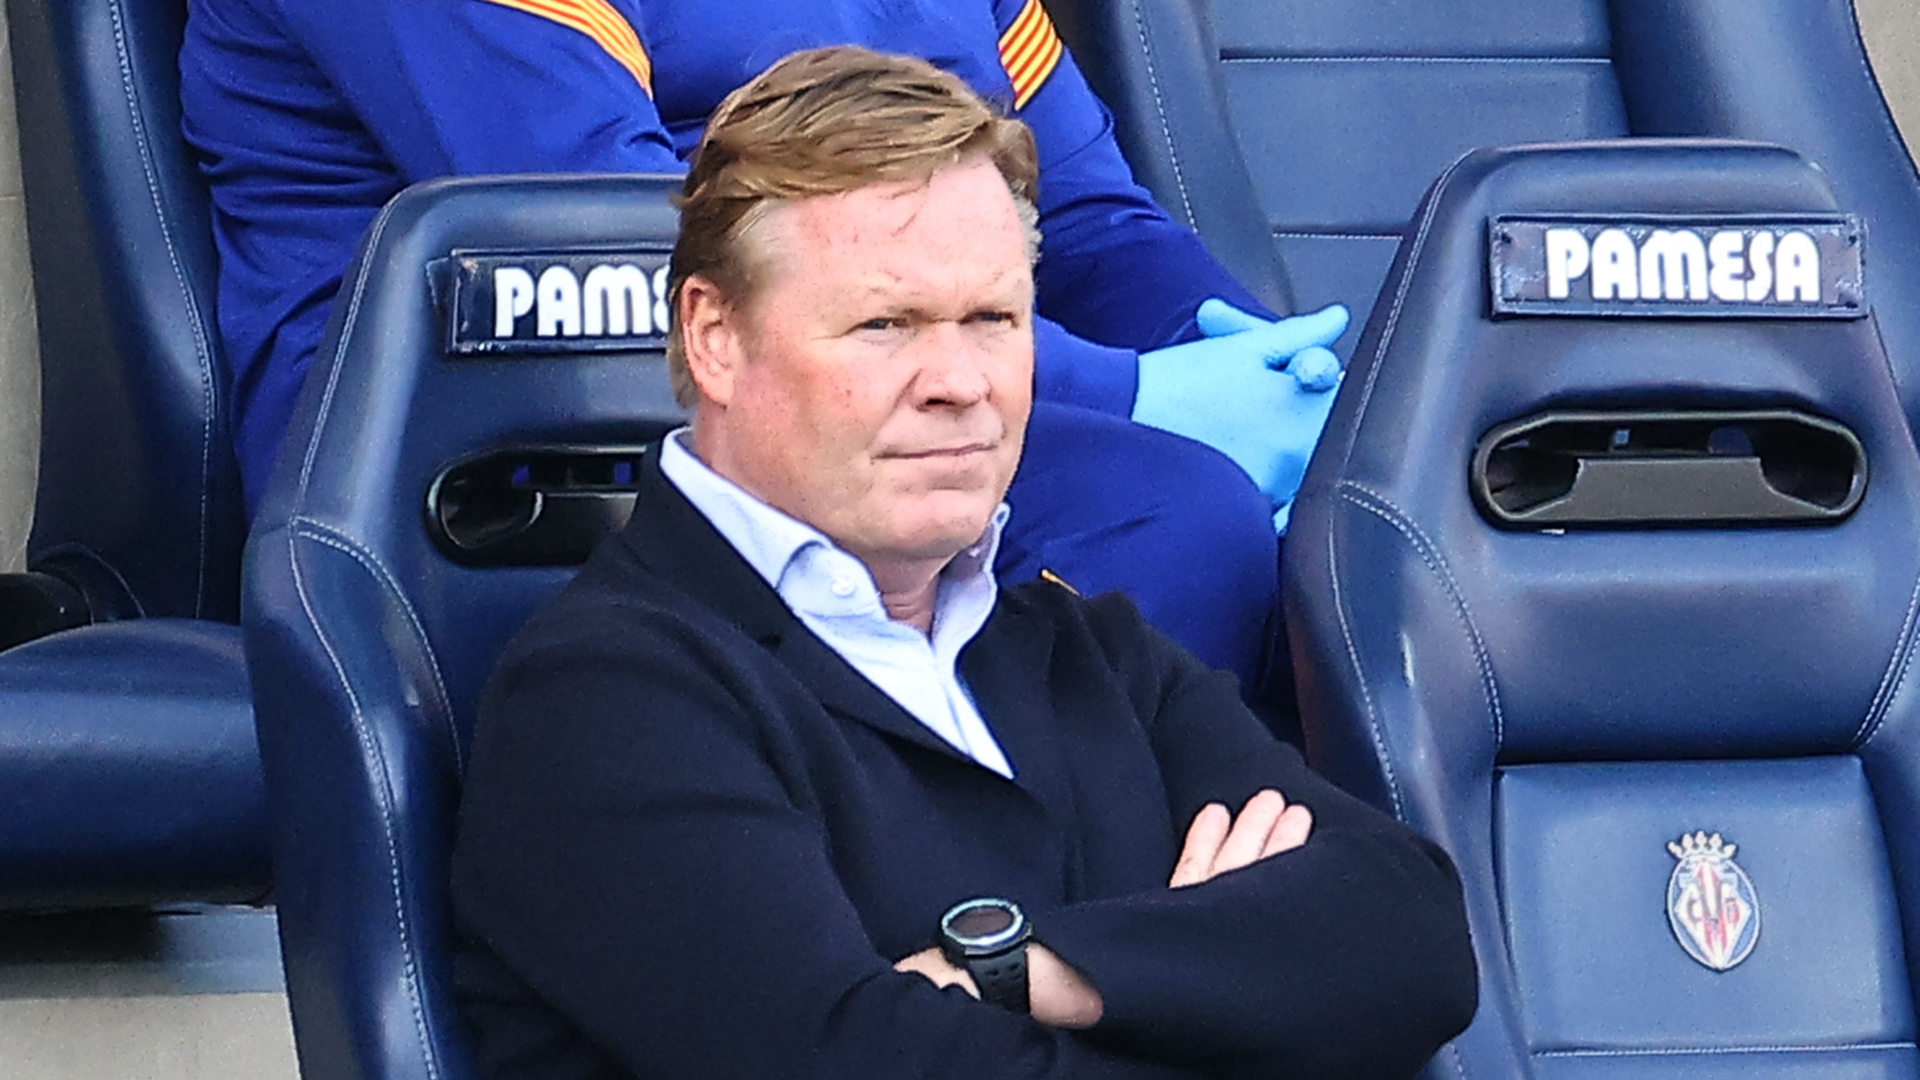 Koeman understands questions about his Barca future after Levante capitulation